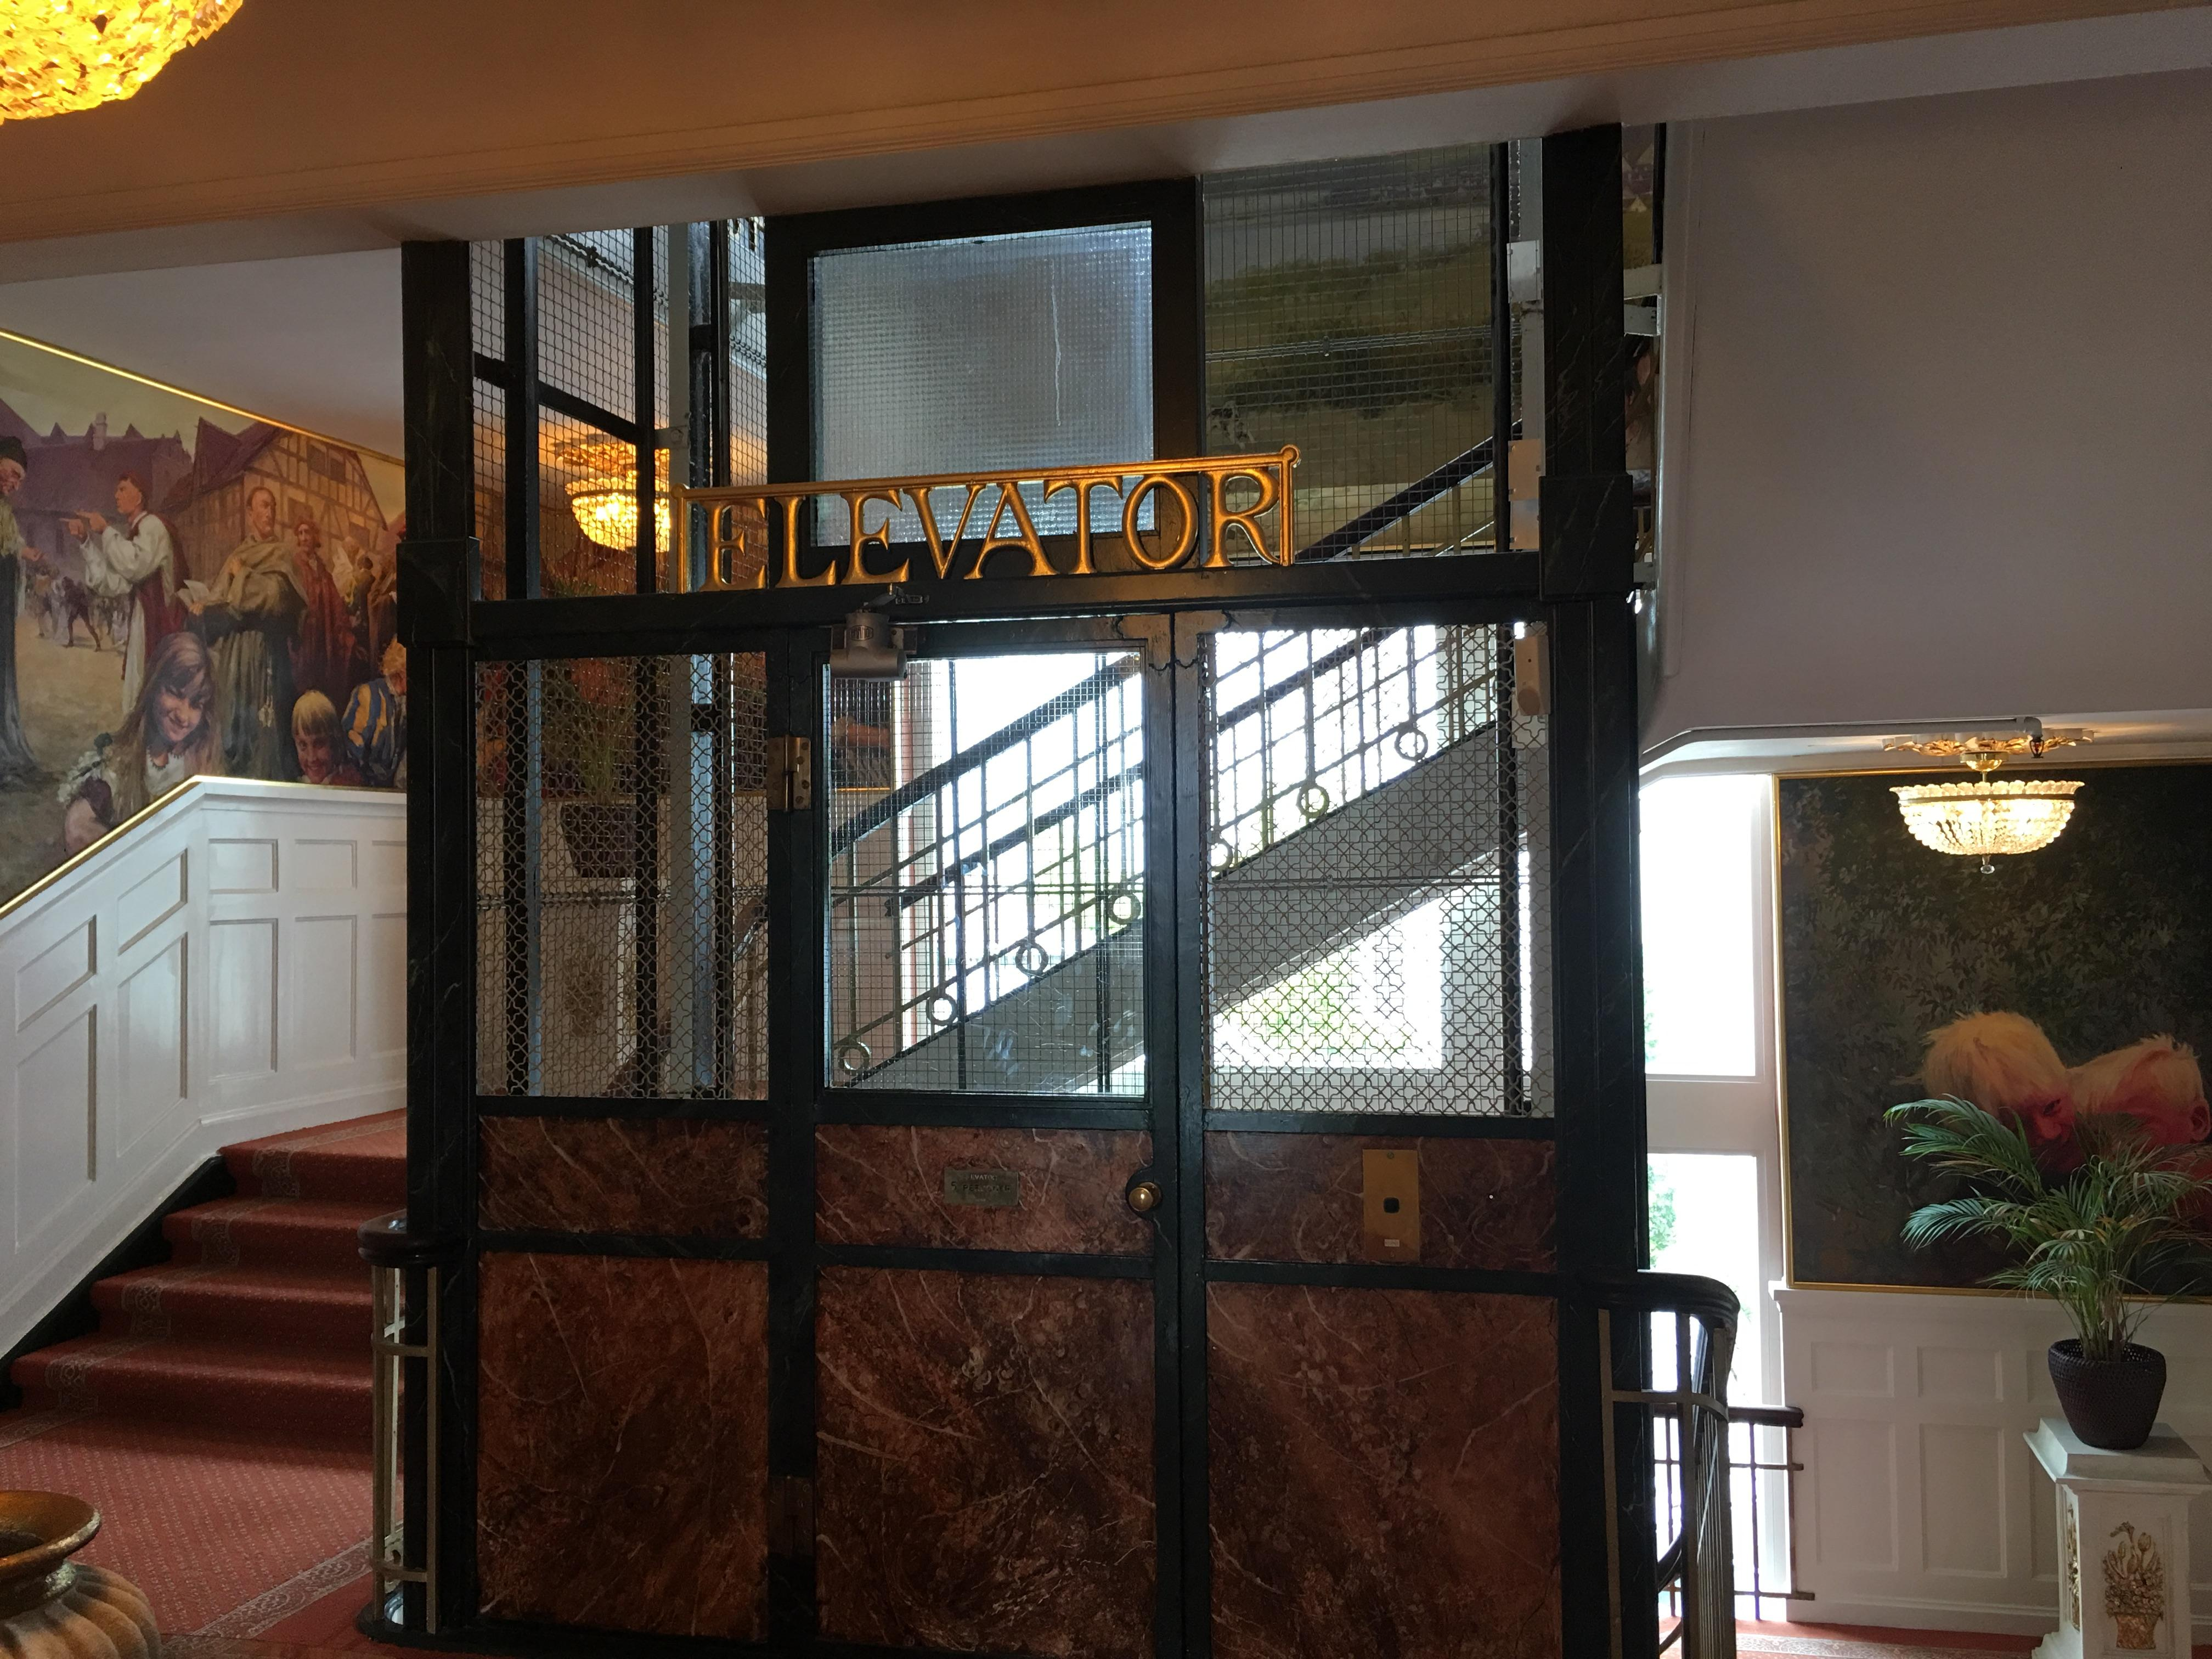 Oldest operating lift in No. Europe